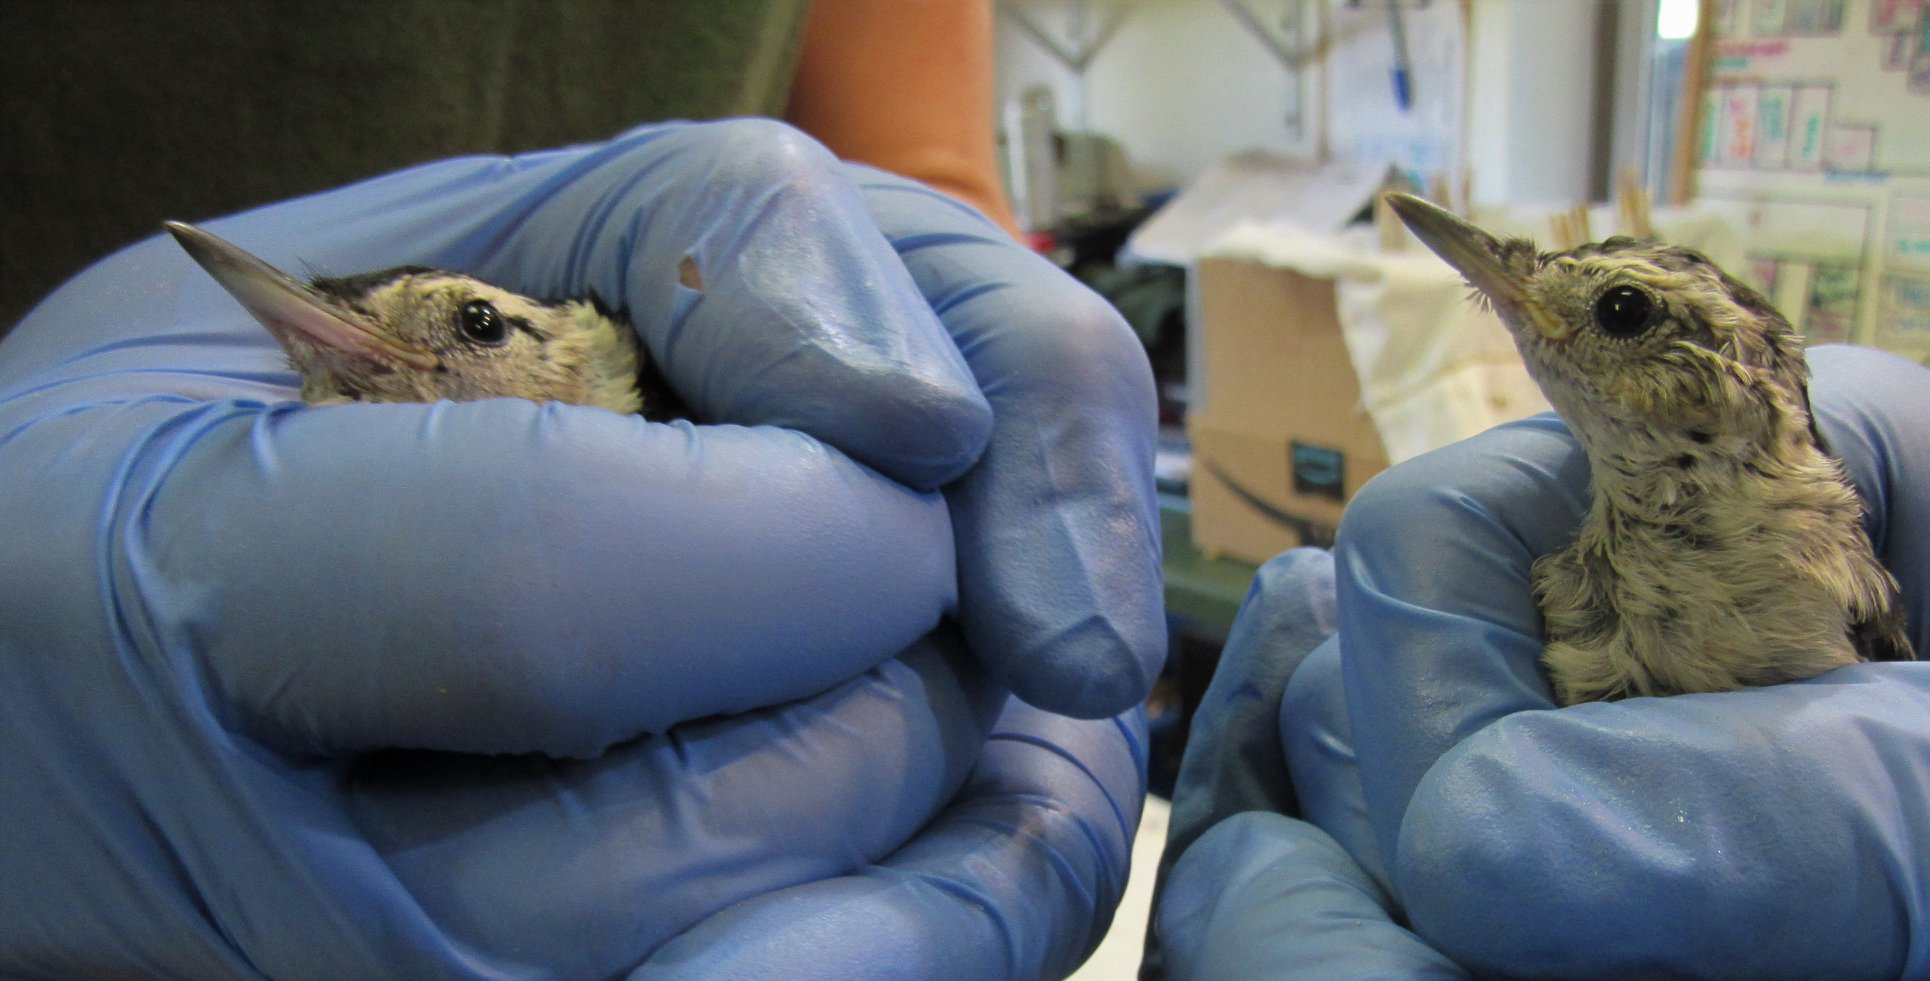 Nuthatch babies are adorable and climb very soon during their development.